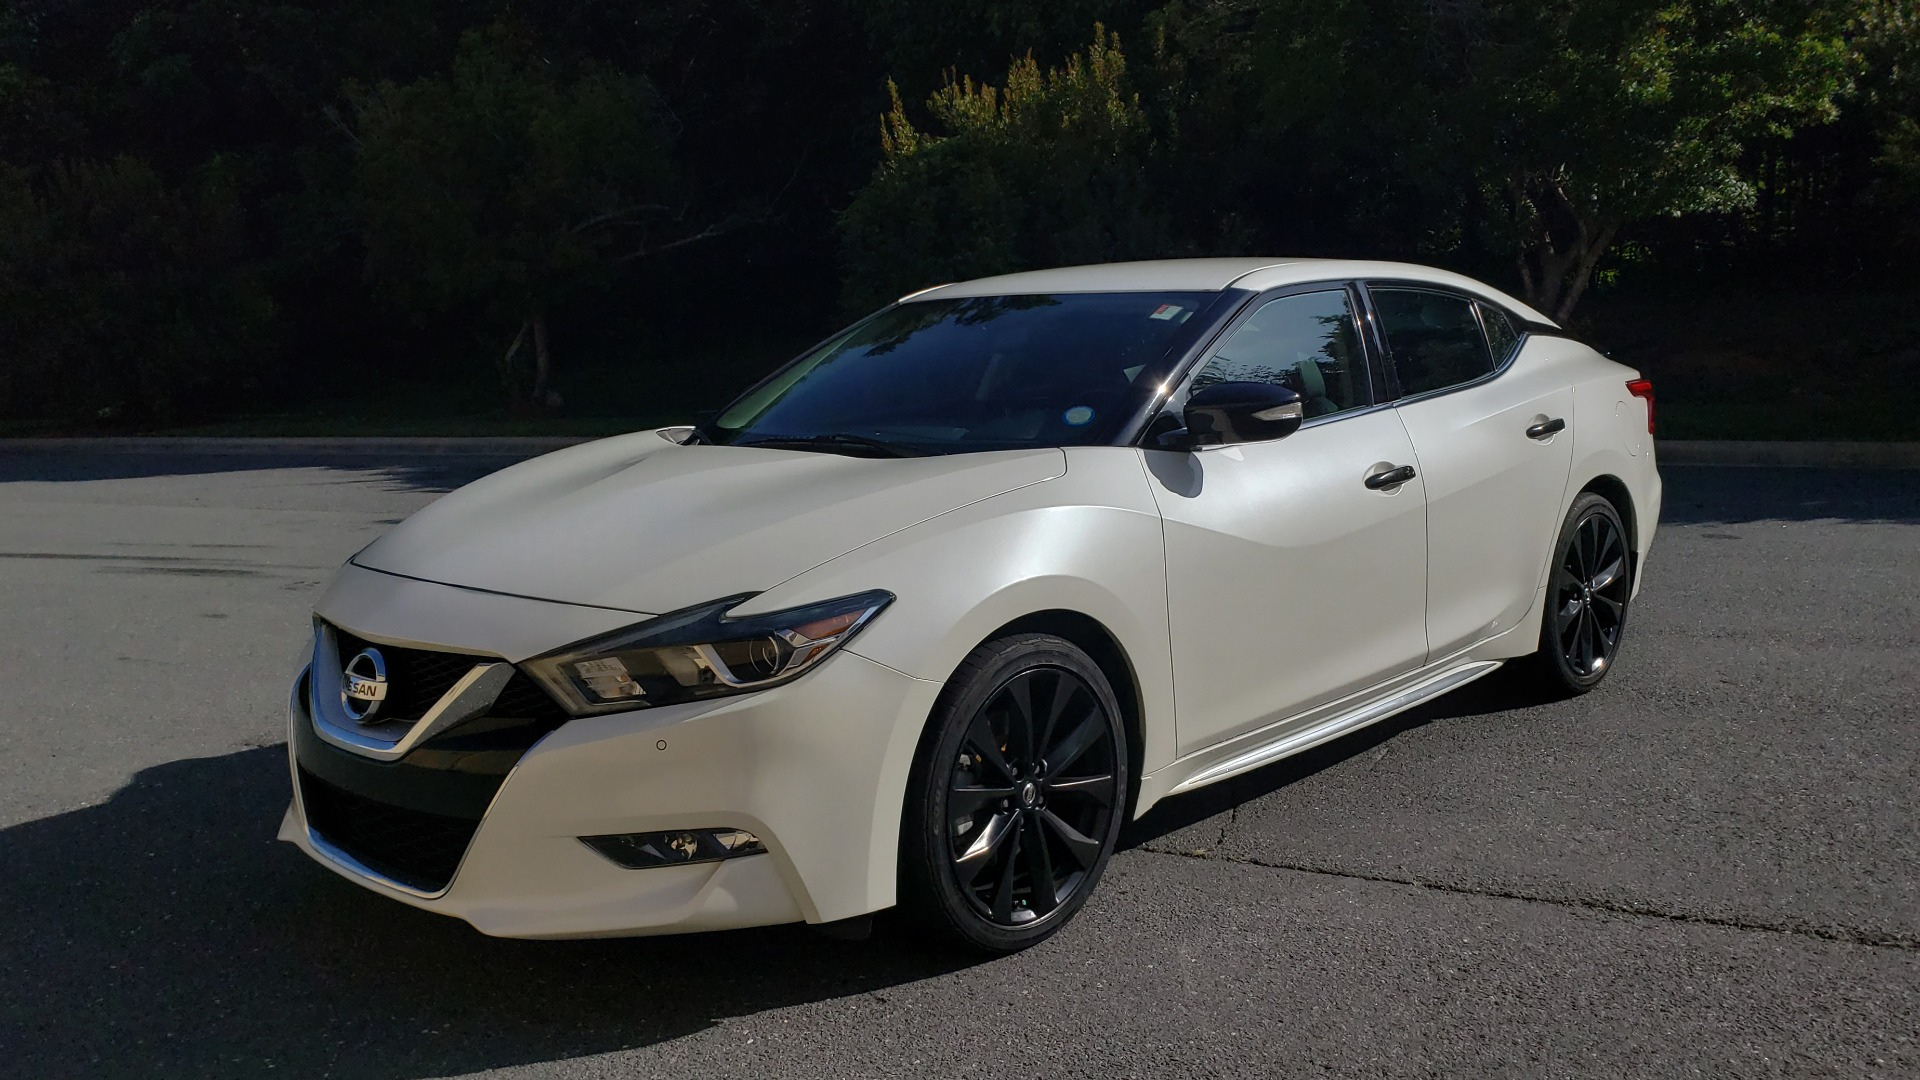 Used 2016 Nissan MAXIMA 3.5 SR / NAV / BOSE / VENT STS / CVT / REARVIEW for sale Sold at Formula Imports in Charlotte NC 28227 1